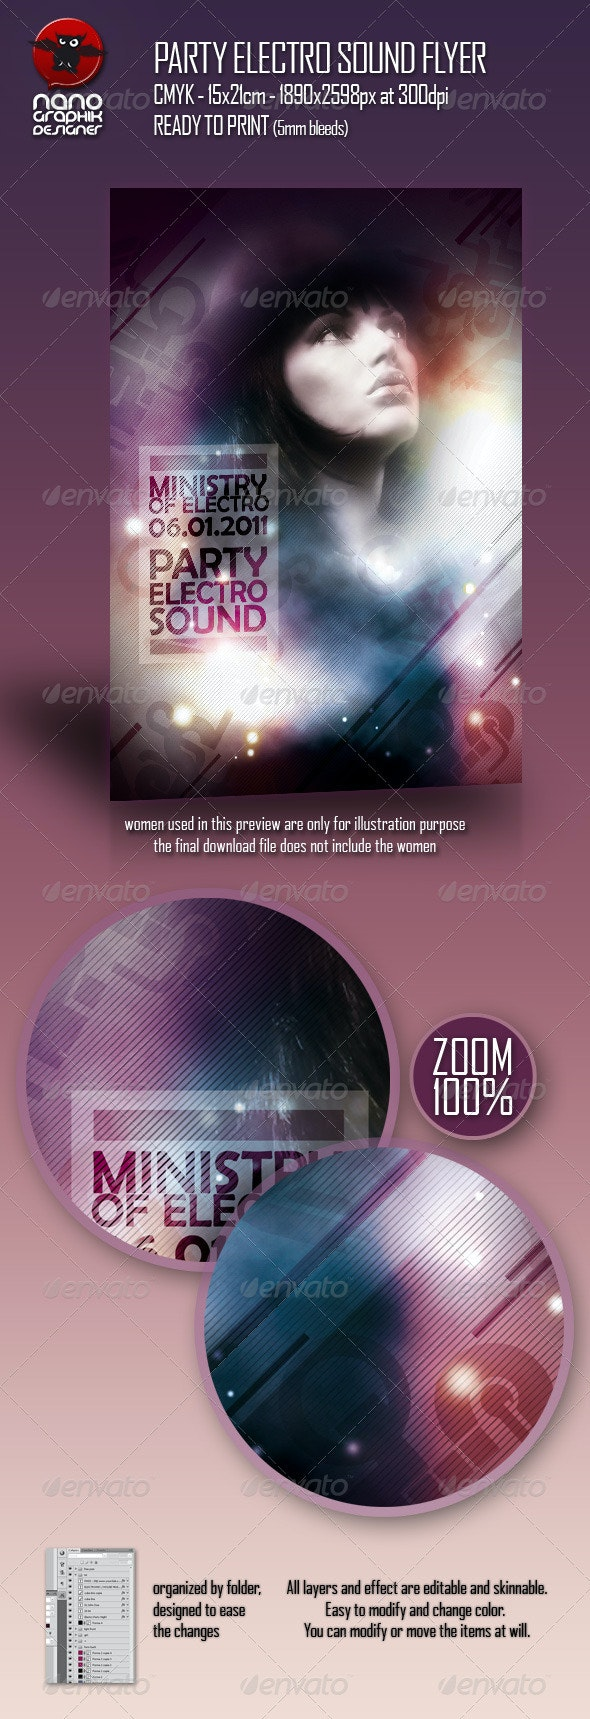 Party Electro Sound Flyer - Clubs & Parties Events